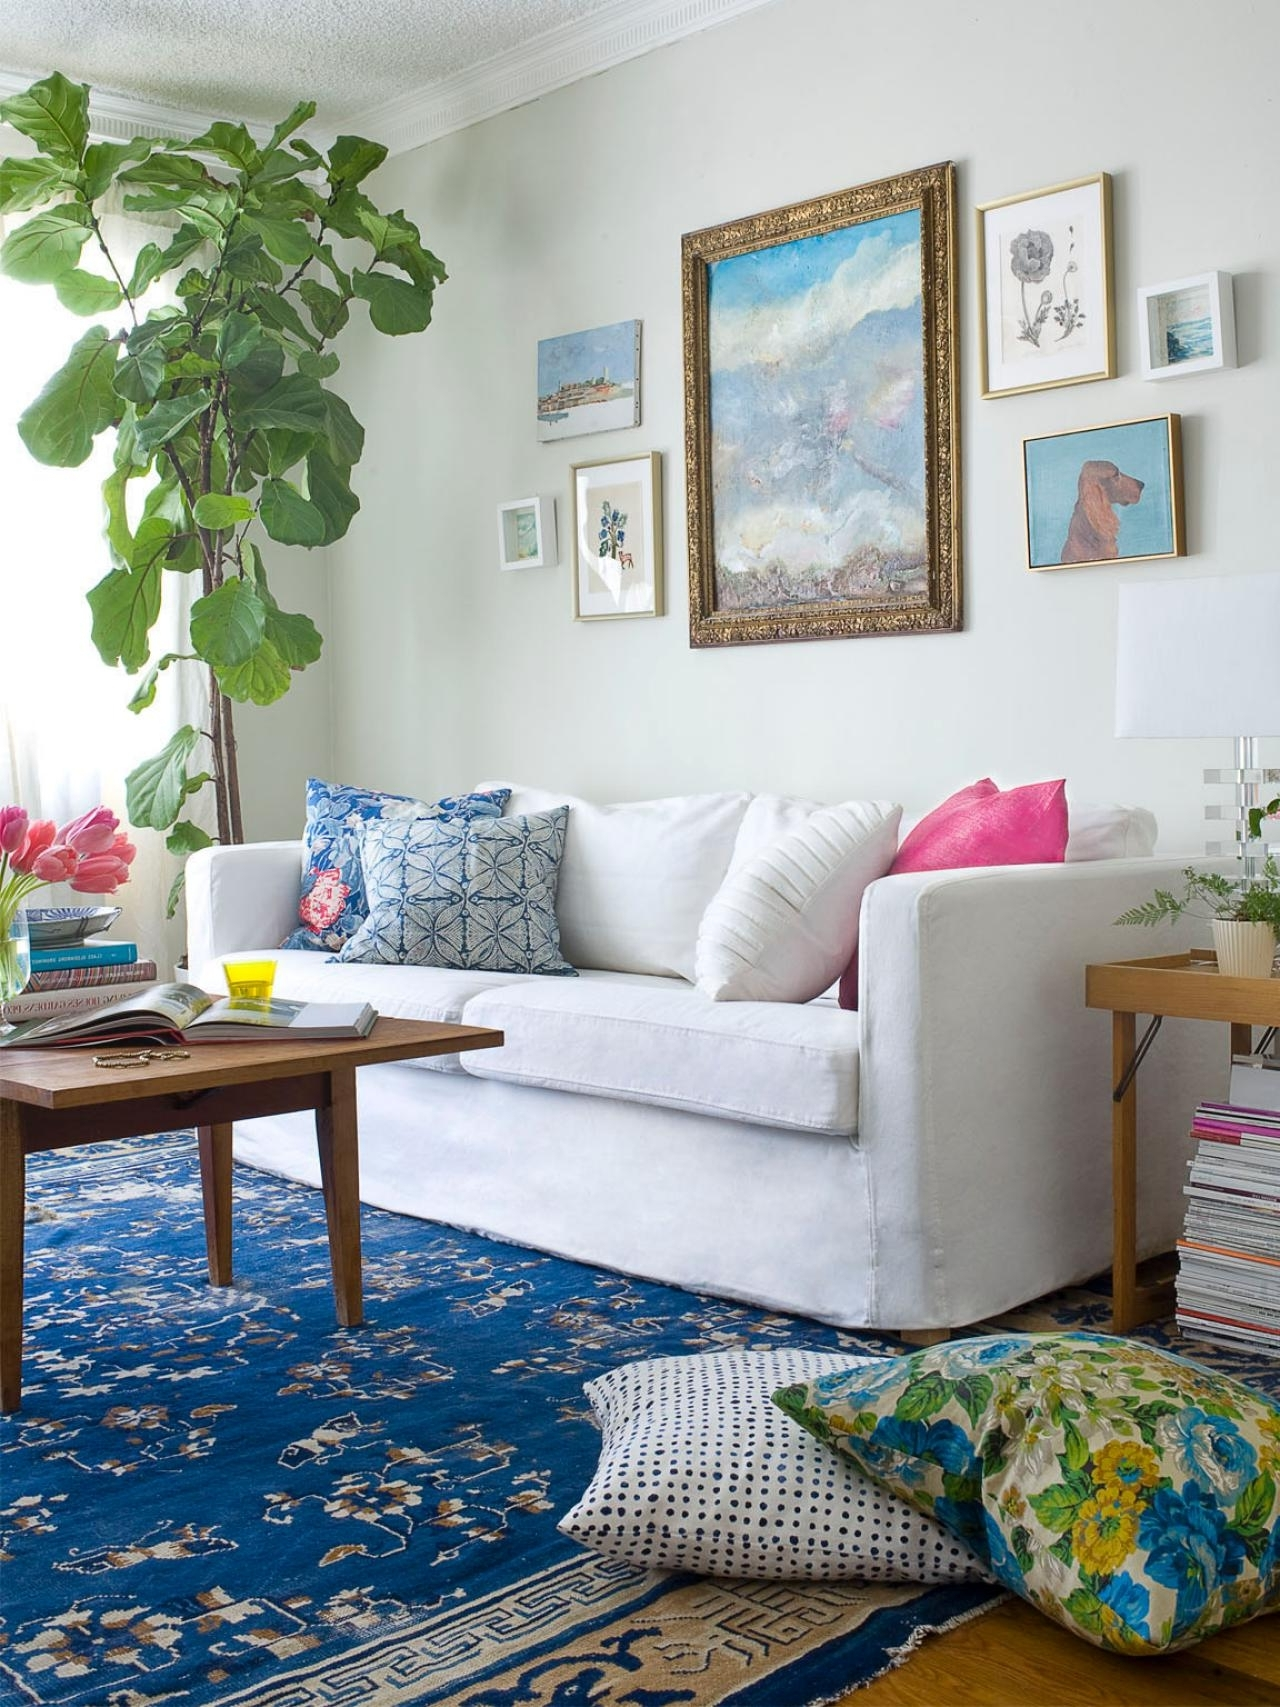 Hgtv's Decorating & Design Blog (View 6 of 15)